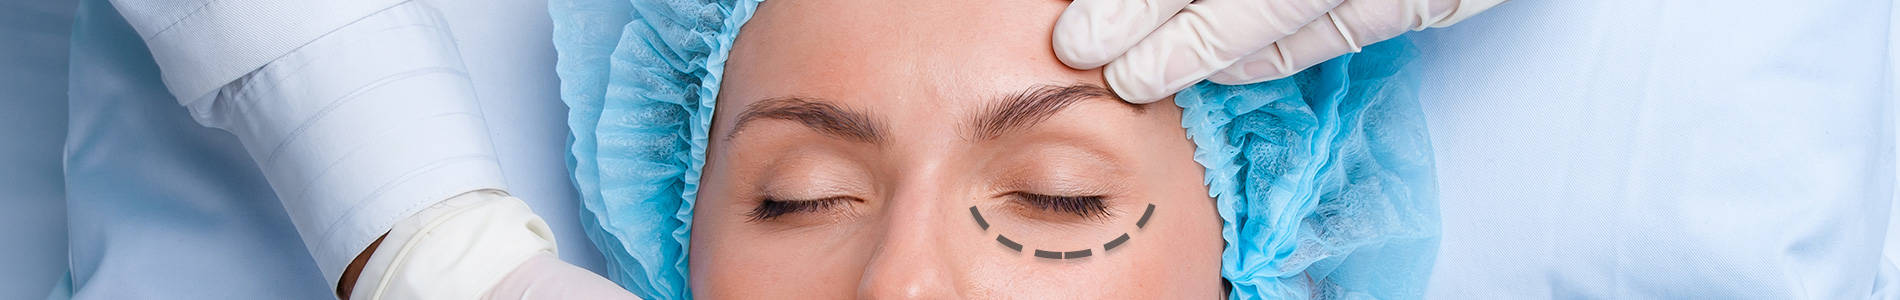 photo-services/cosmetic-eye-surgery-header.jpg